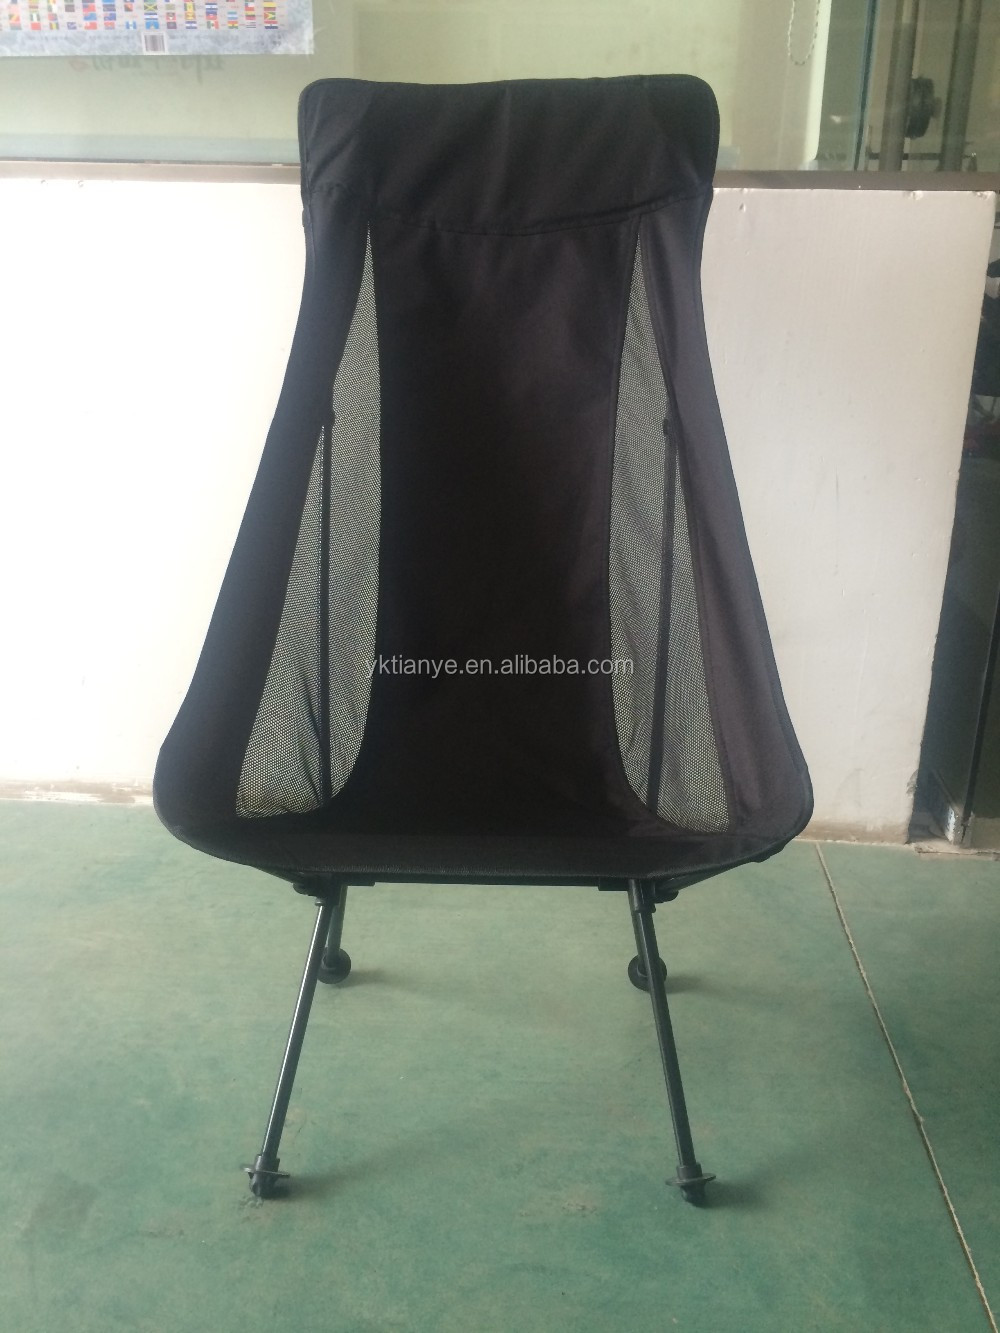 2016 new portable chair folding chair outdoor sport chairs View chair chair